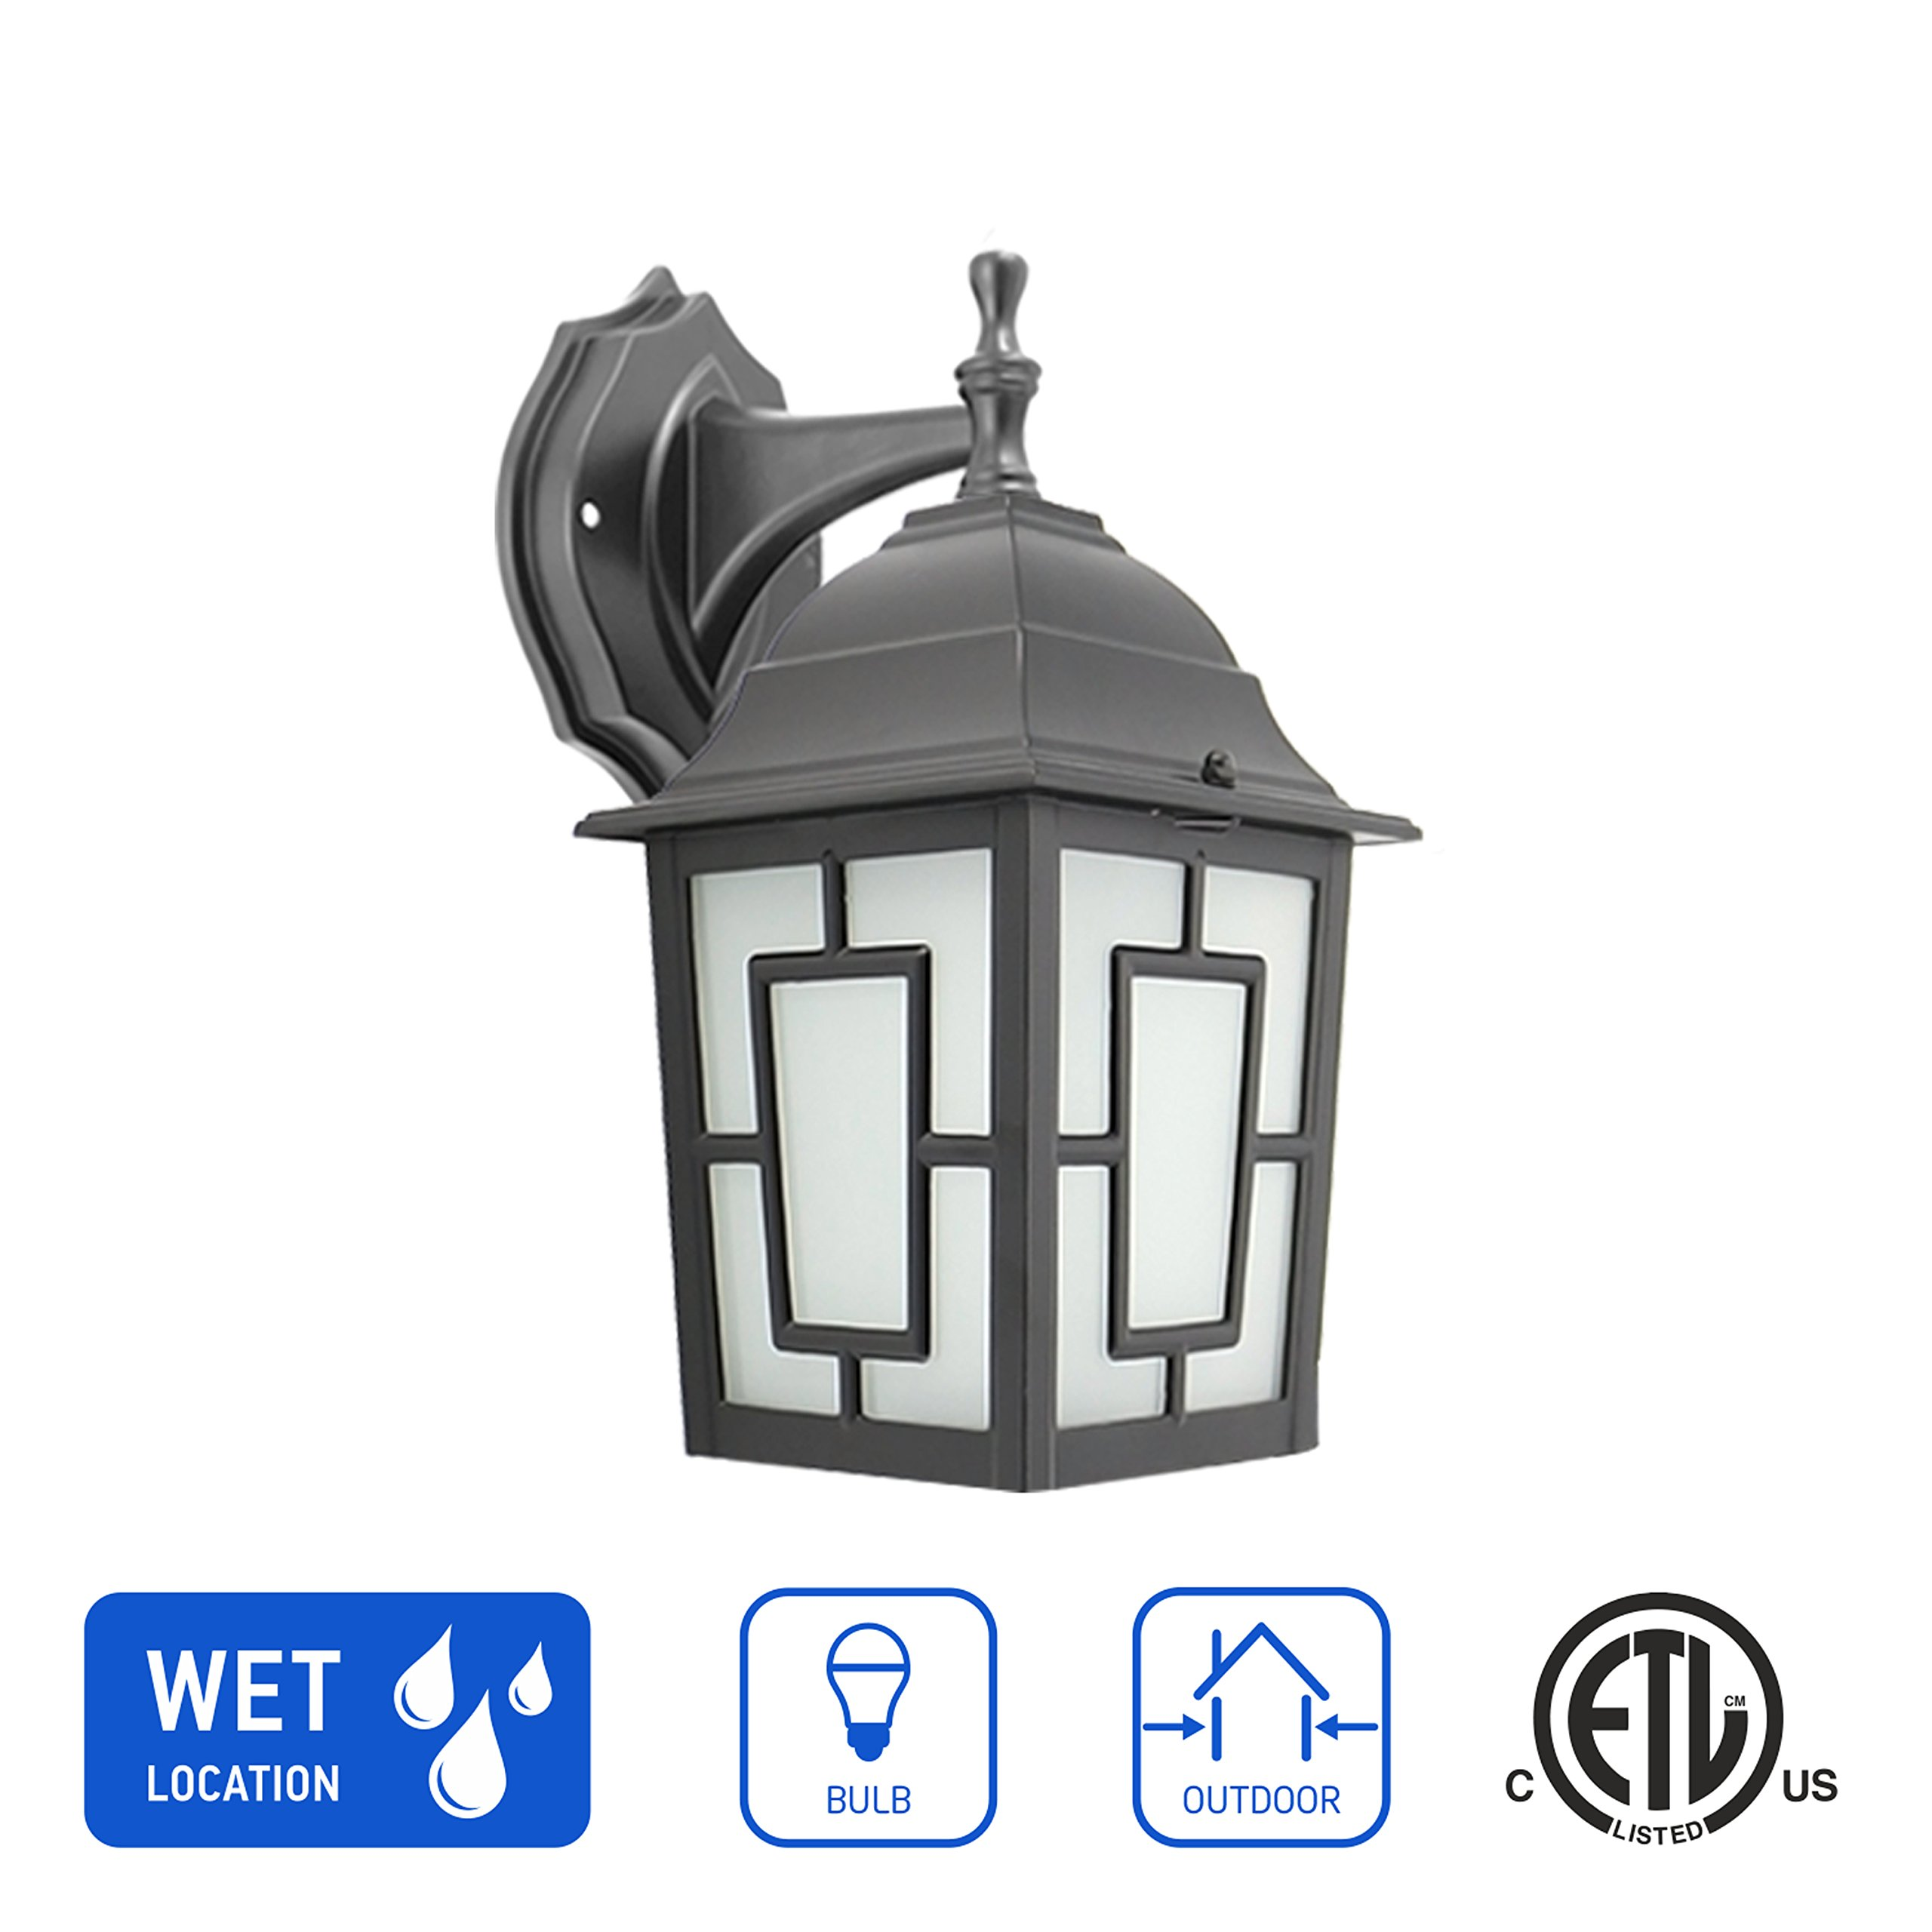 in Home 1-Light Outdoor Wall Mount Lantern Downward Fixture L05 Series Traditional Design Black Finish, Frosted Glass Shade, ETL Listed